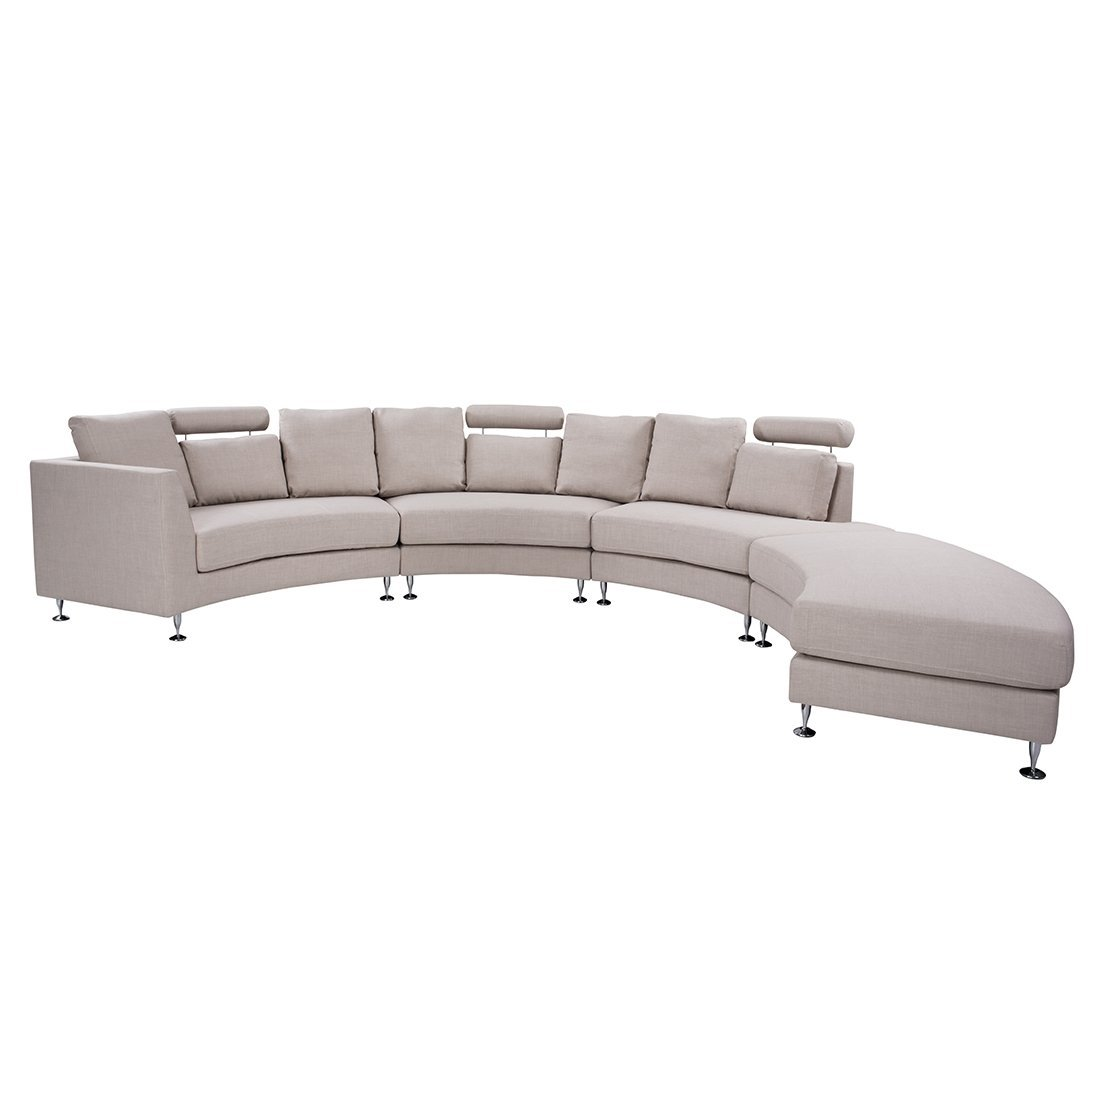 Modern Curved Sectional Sofa with Chaise and Headrests Beige ...